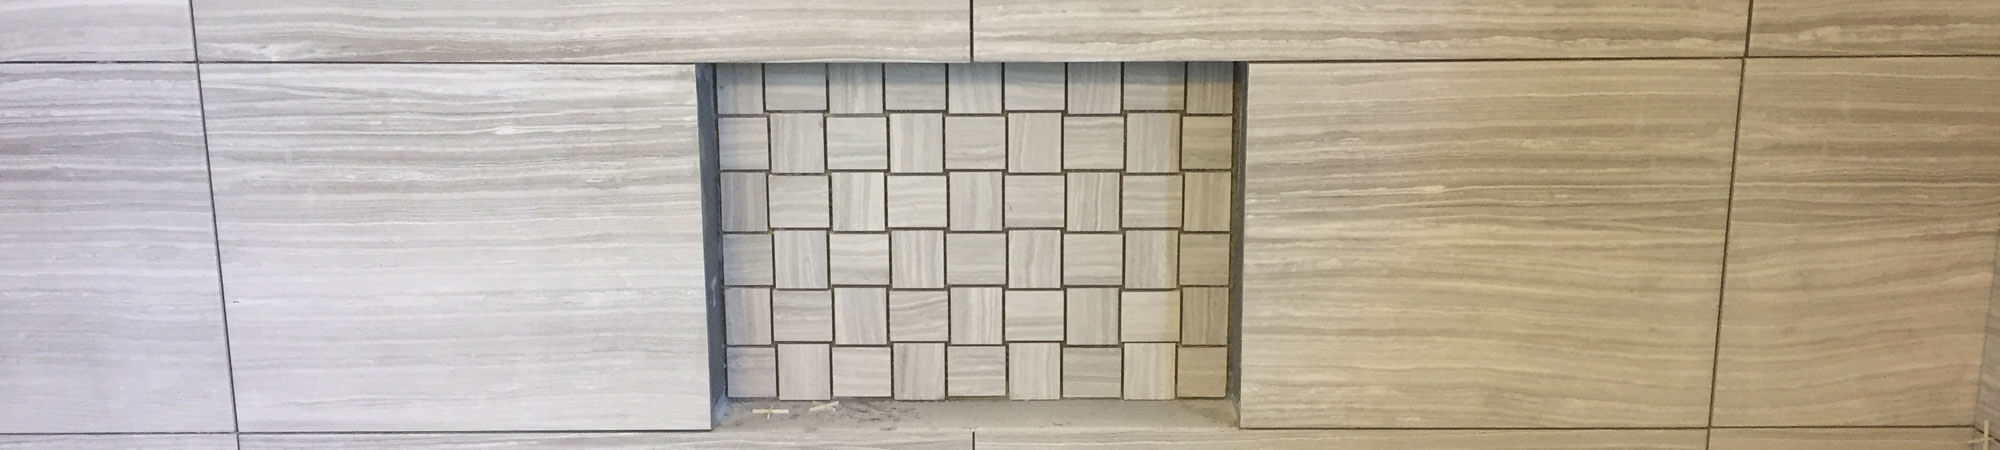 Shower Tile with Soap Shelf